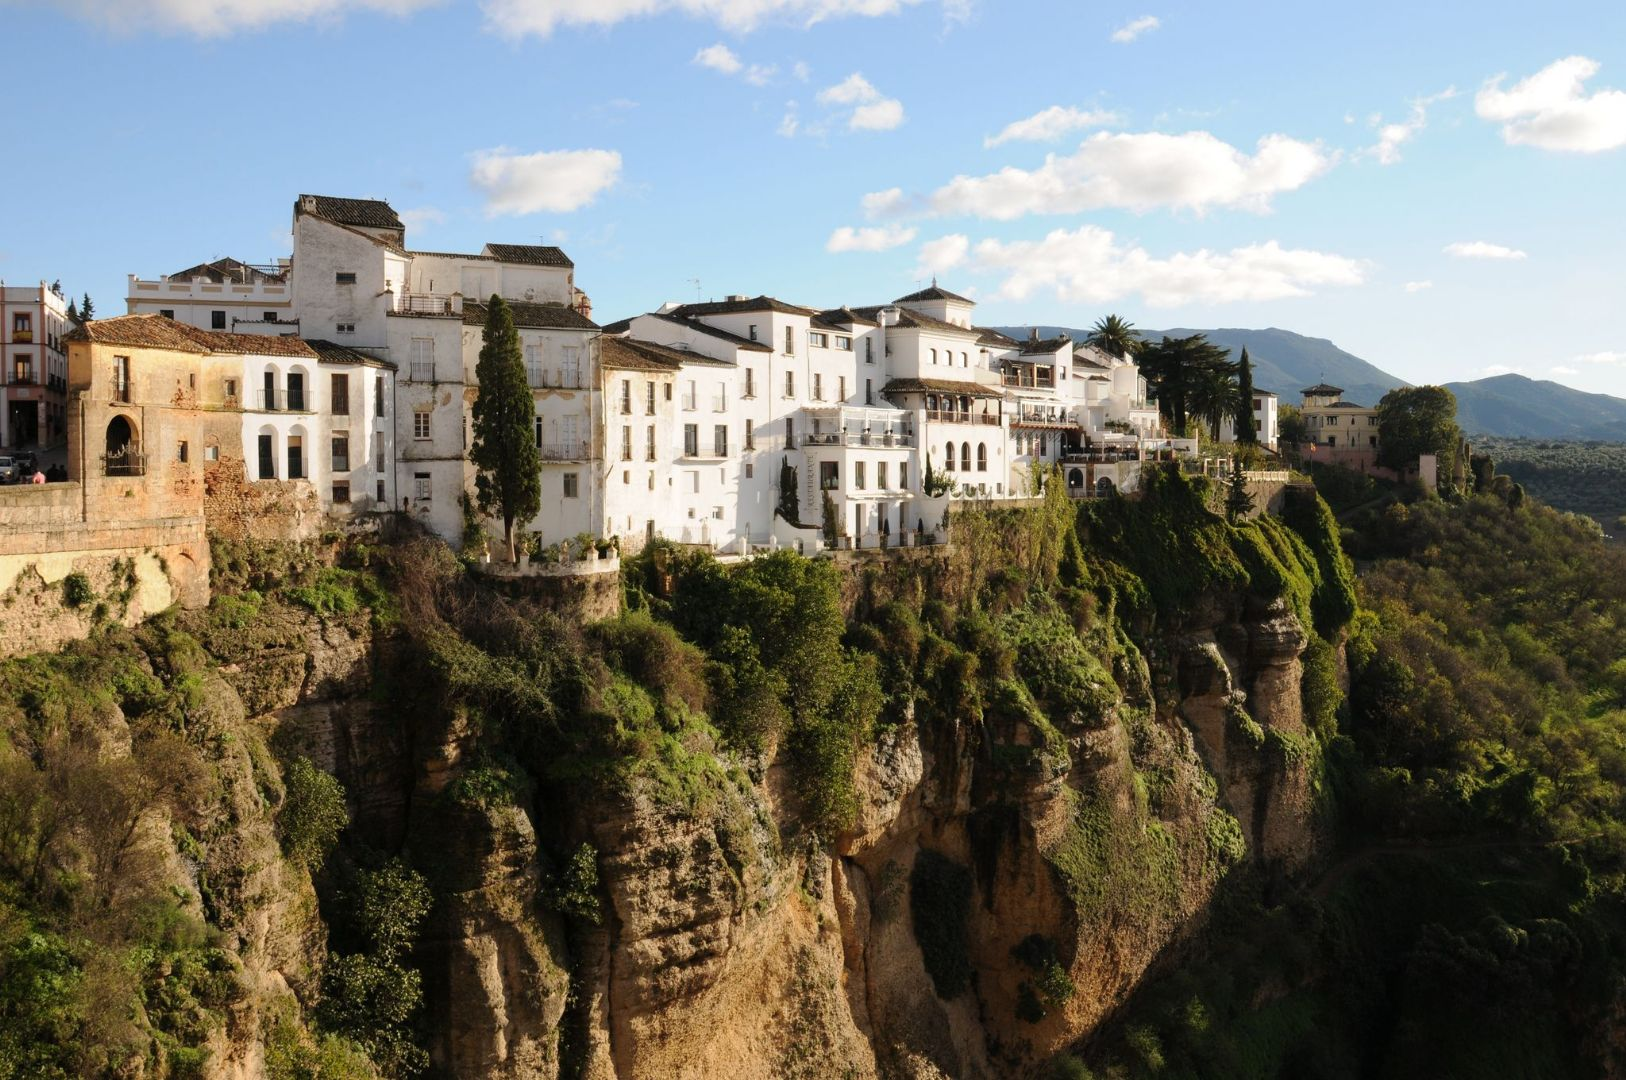 spain road to ronda road cycling holiday 2.jpg - Southern Spain - Roads of Ronda - Self-Guided Road Cycling Holiday - Road Cycling